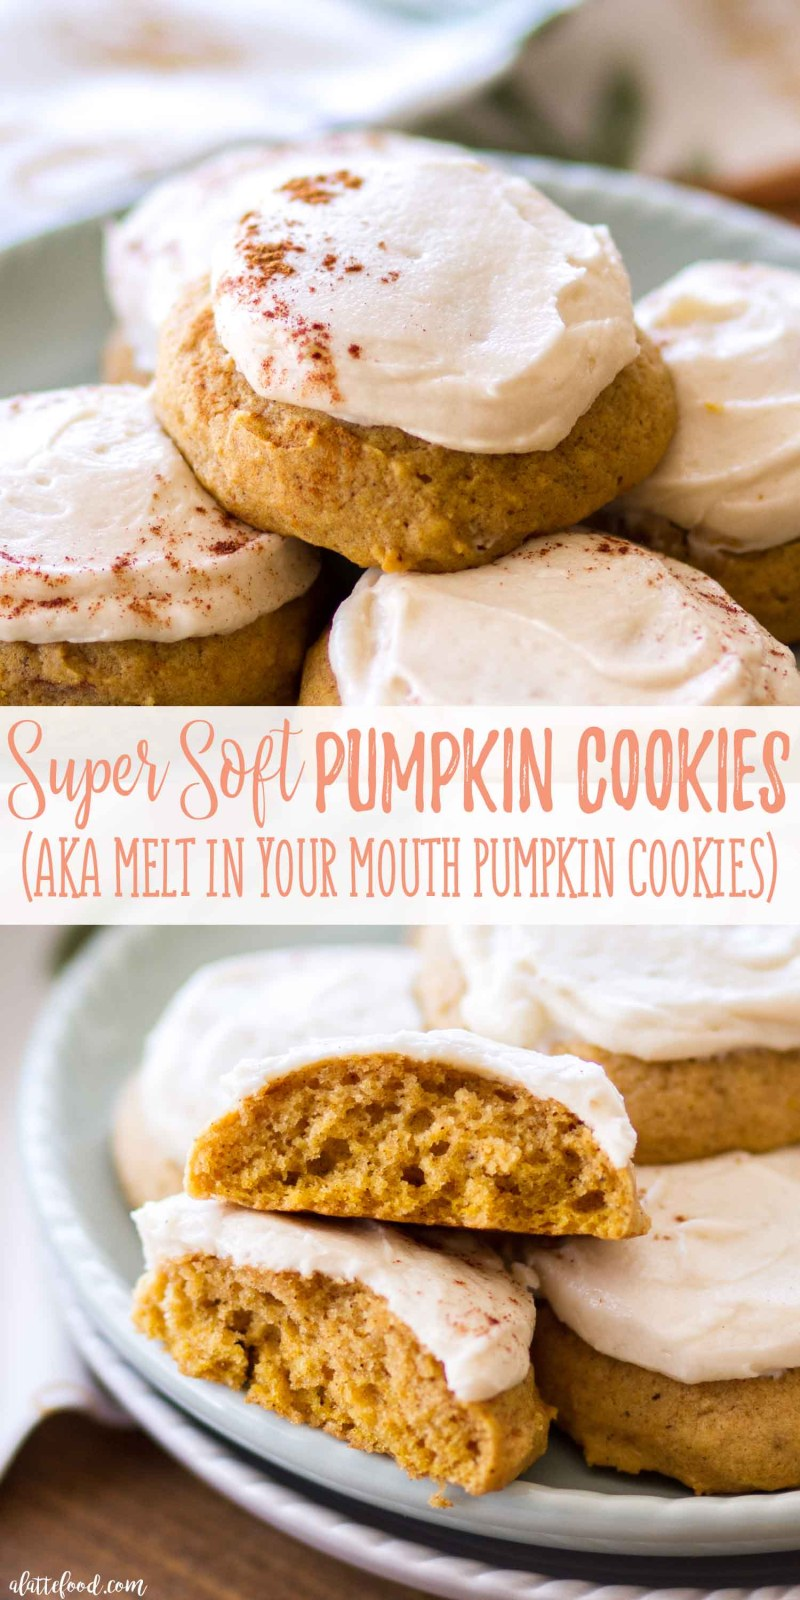 Bakery style Soft Pumpkin Cookies topped with a homemade maple frosting!